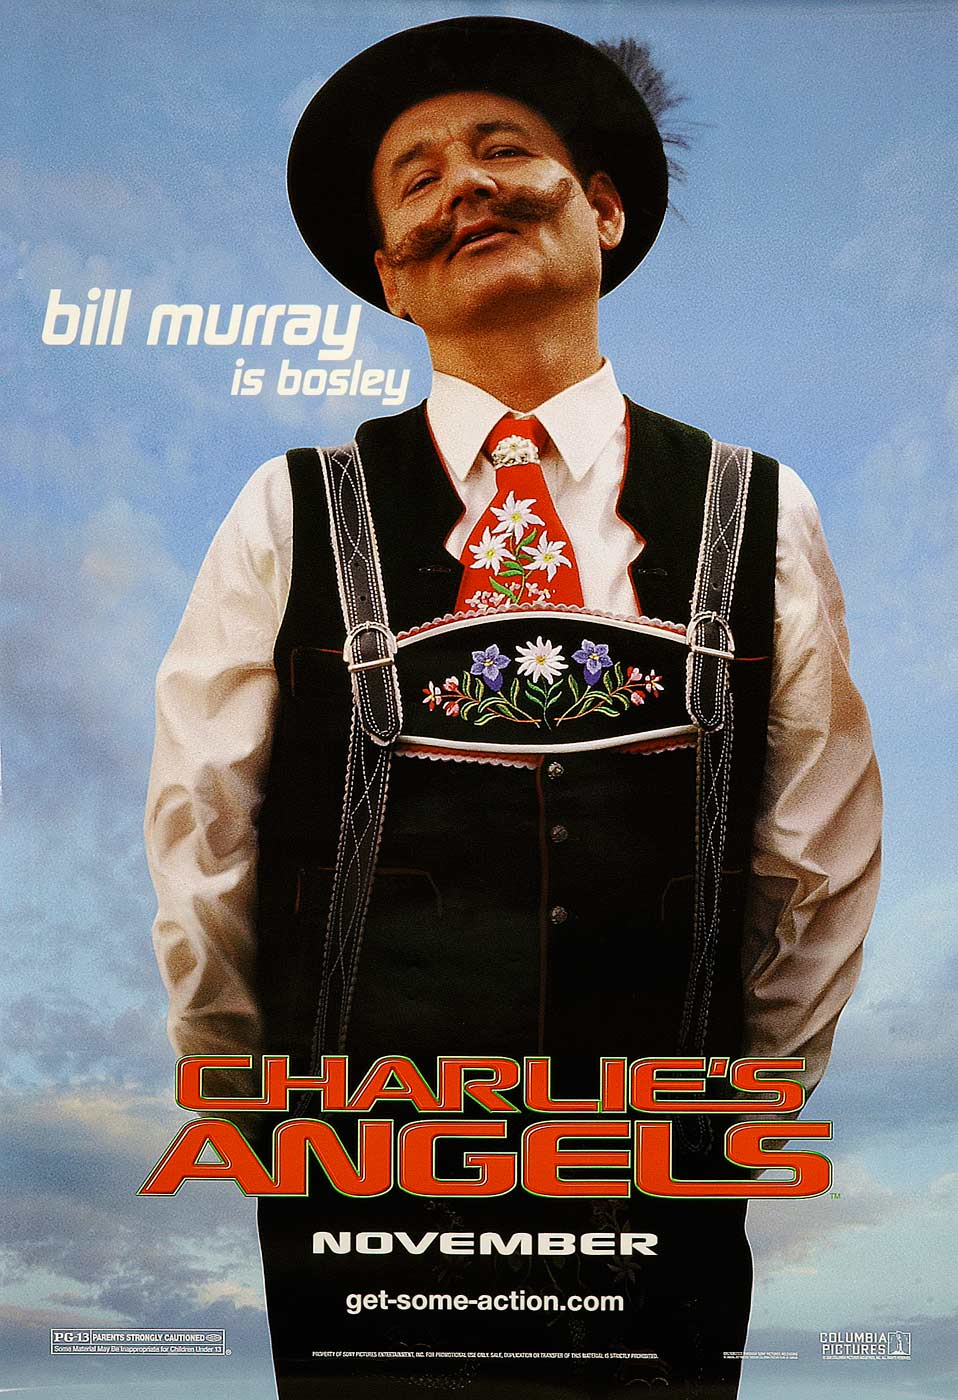 Bill-Murray-Bustoprtchd